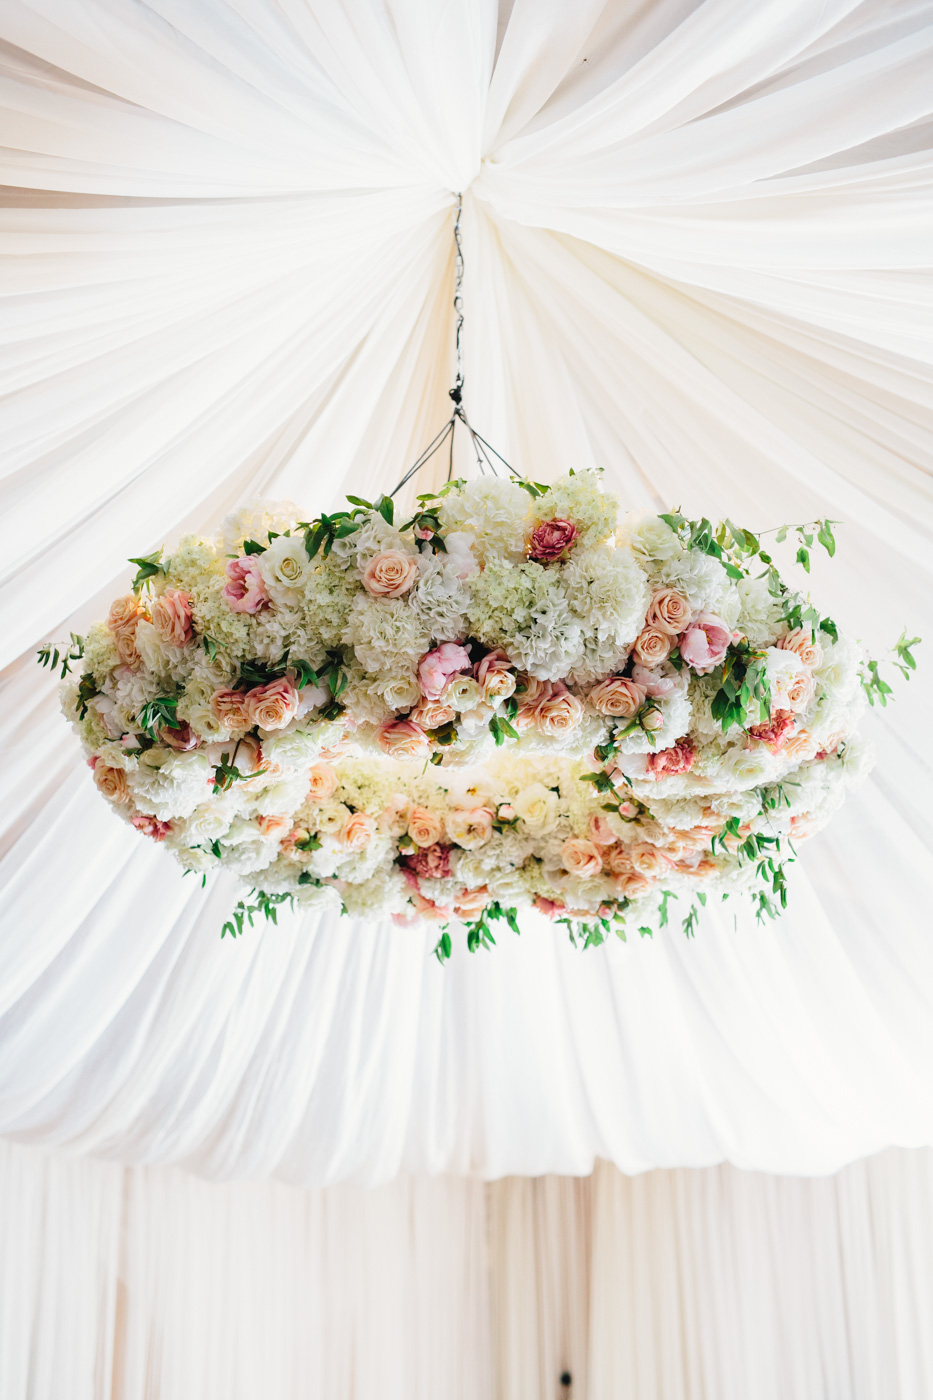 Flower chandelier at tented wedding reception over dance floor ideas